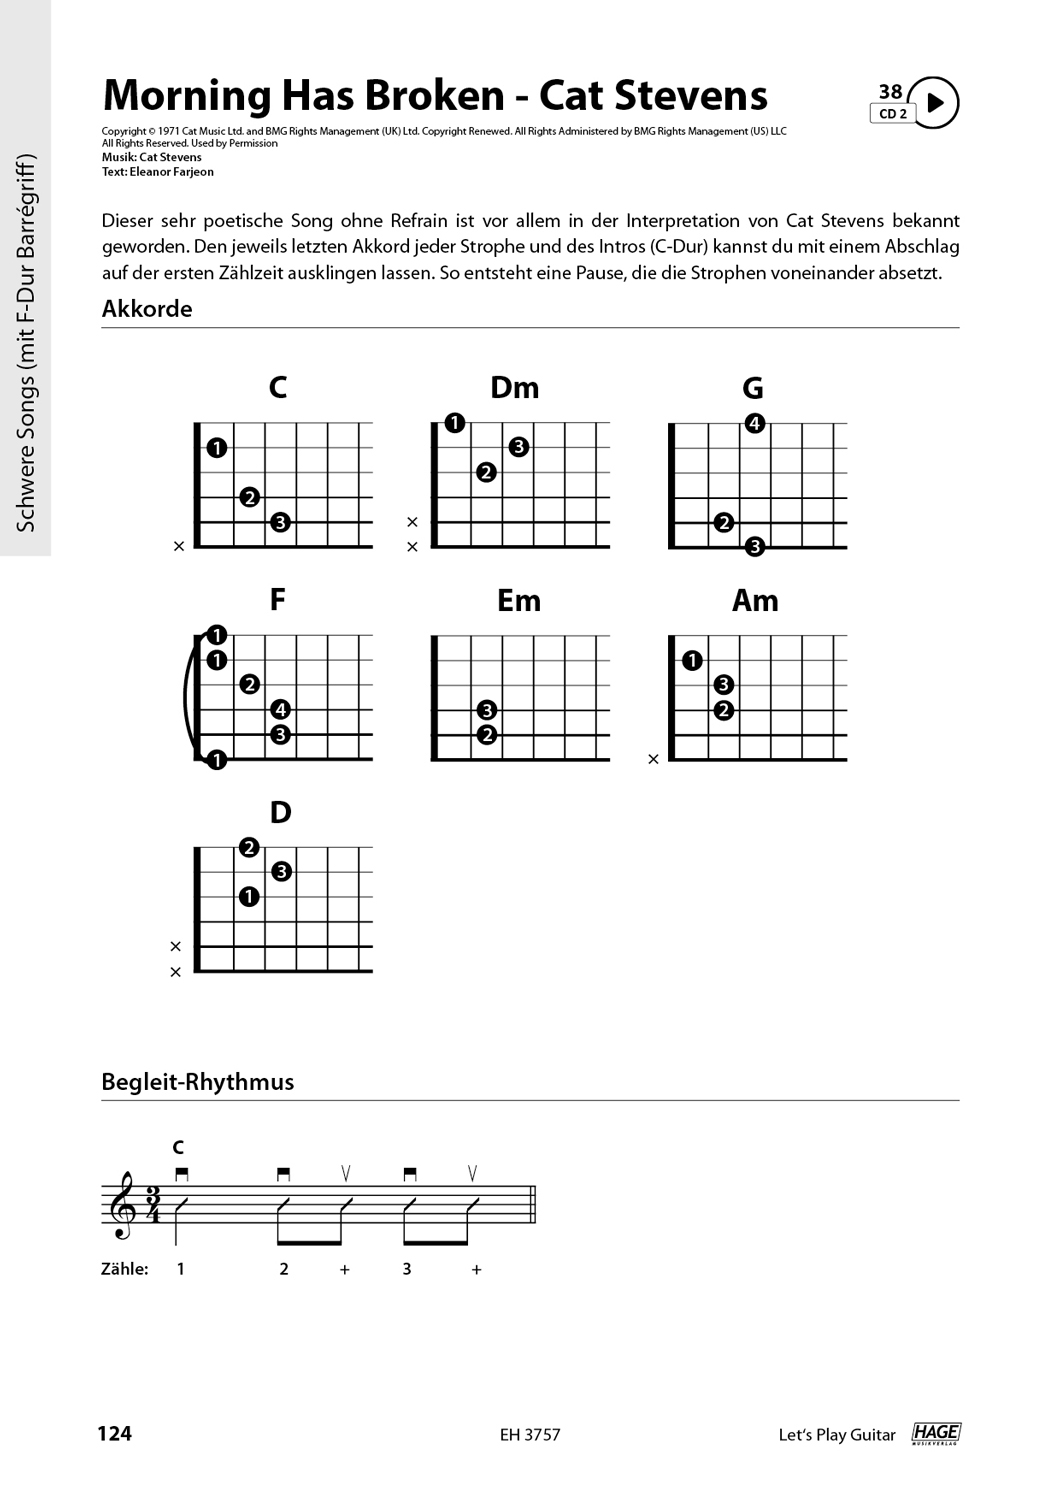 Let's Play Guitar Volume 1 (with 2 CDs and QR Codes) Pages 10